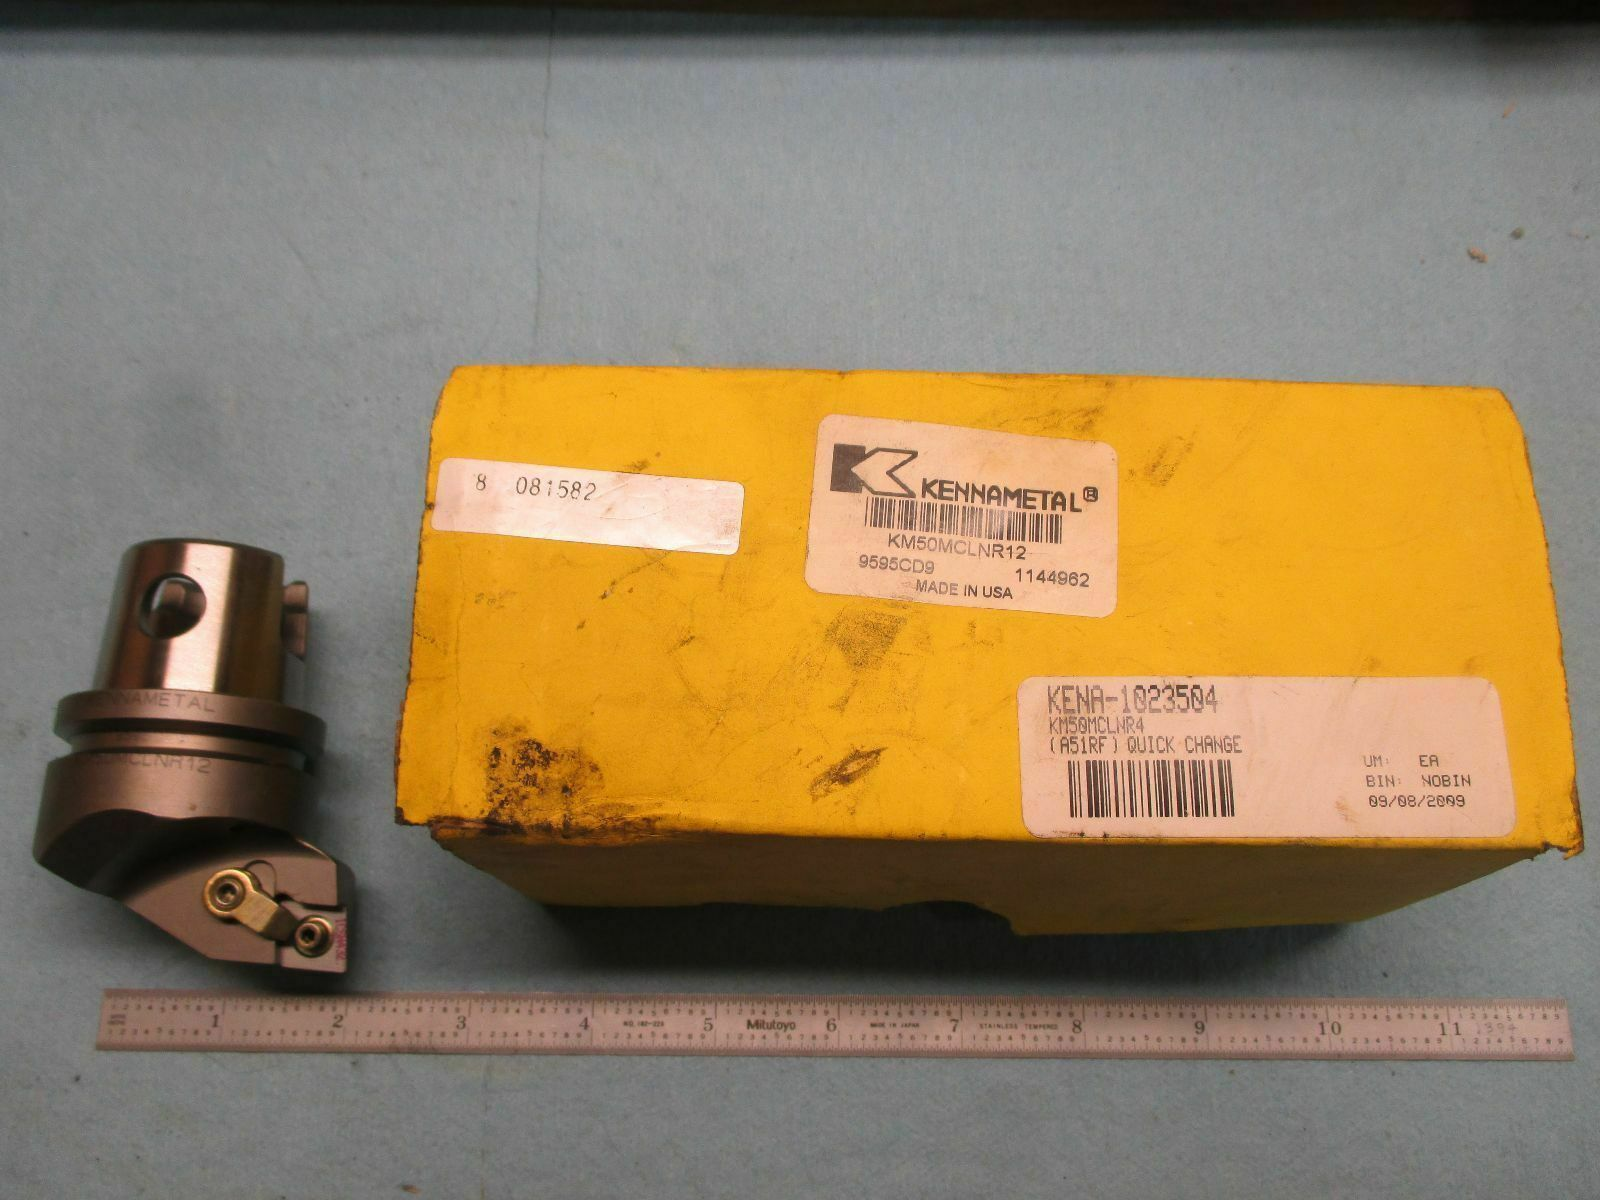 kennametal tool holders. new in box kennametal km50 mclnr 12 turning tool holder holds cnmg 432 inserts kennametal tool holders